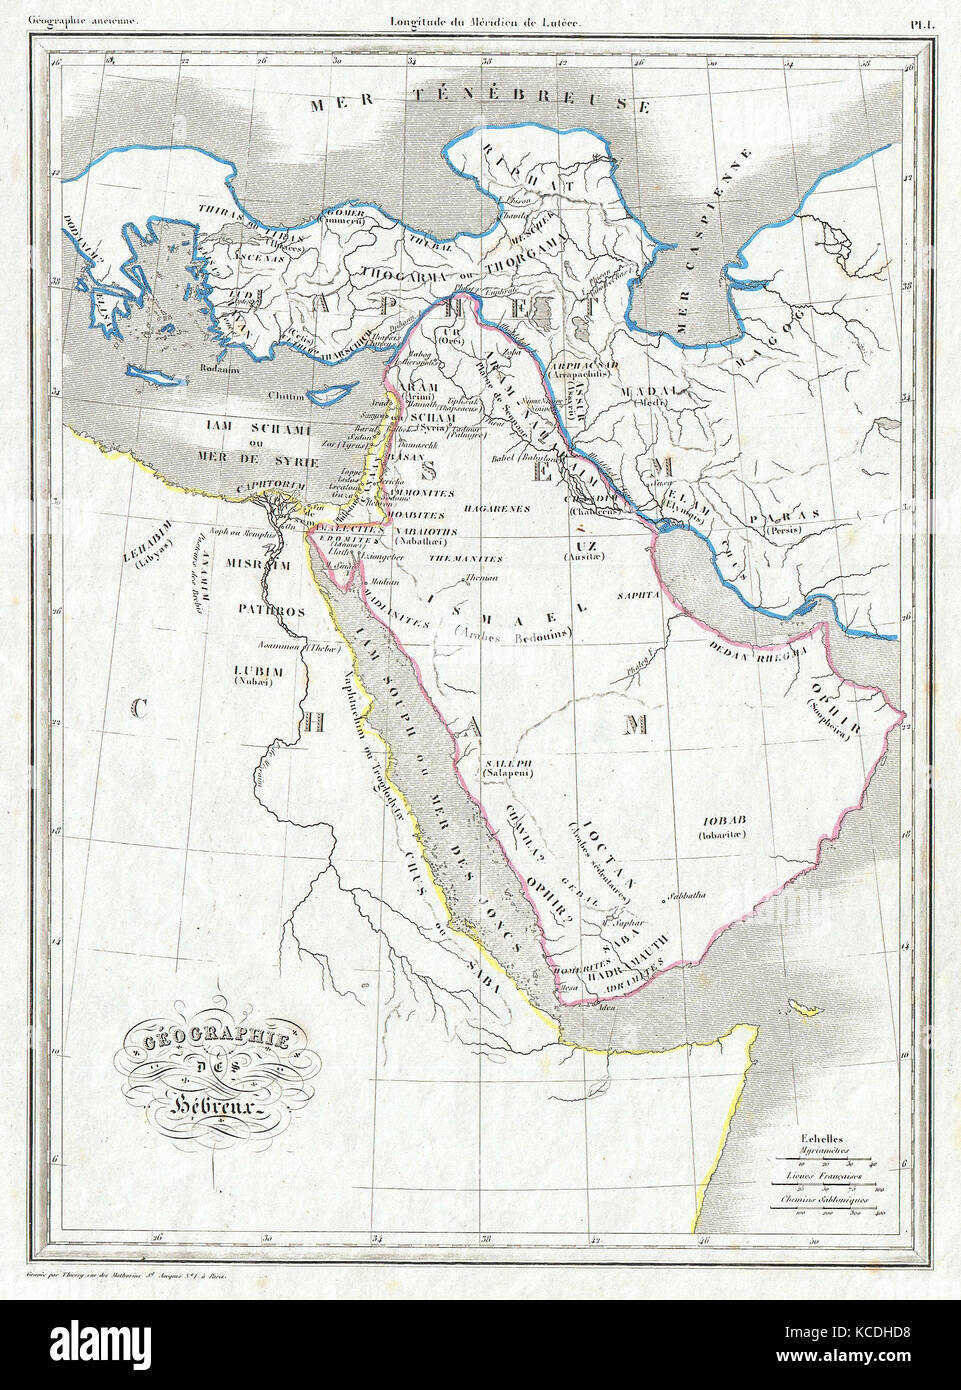 1843 malte brun map of the biblical lands of the hebrews egypt 1843 malte brun map of the biblical lands of the hebrews egypt arabia israel turkey gumiabroncs Choice Image